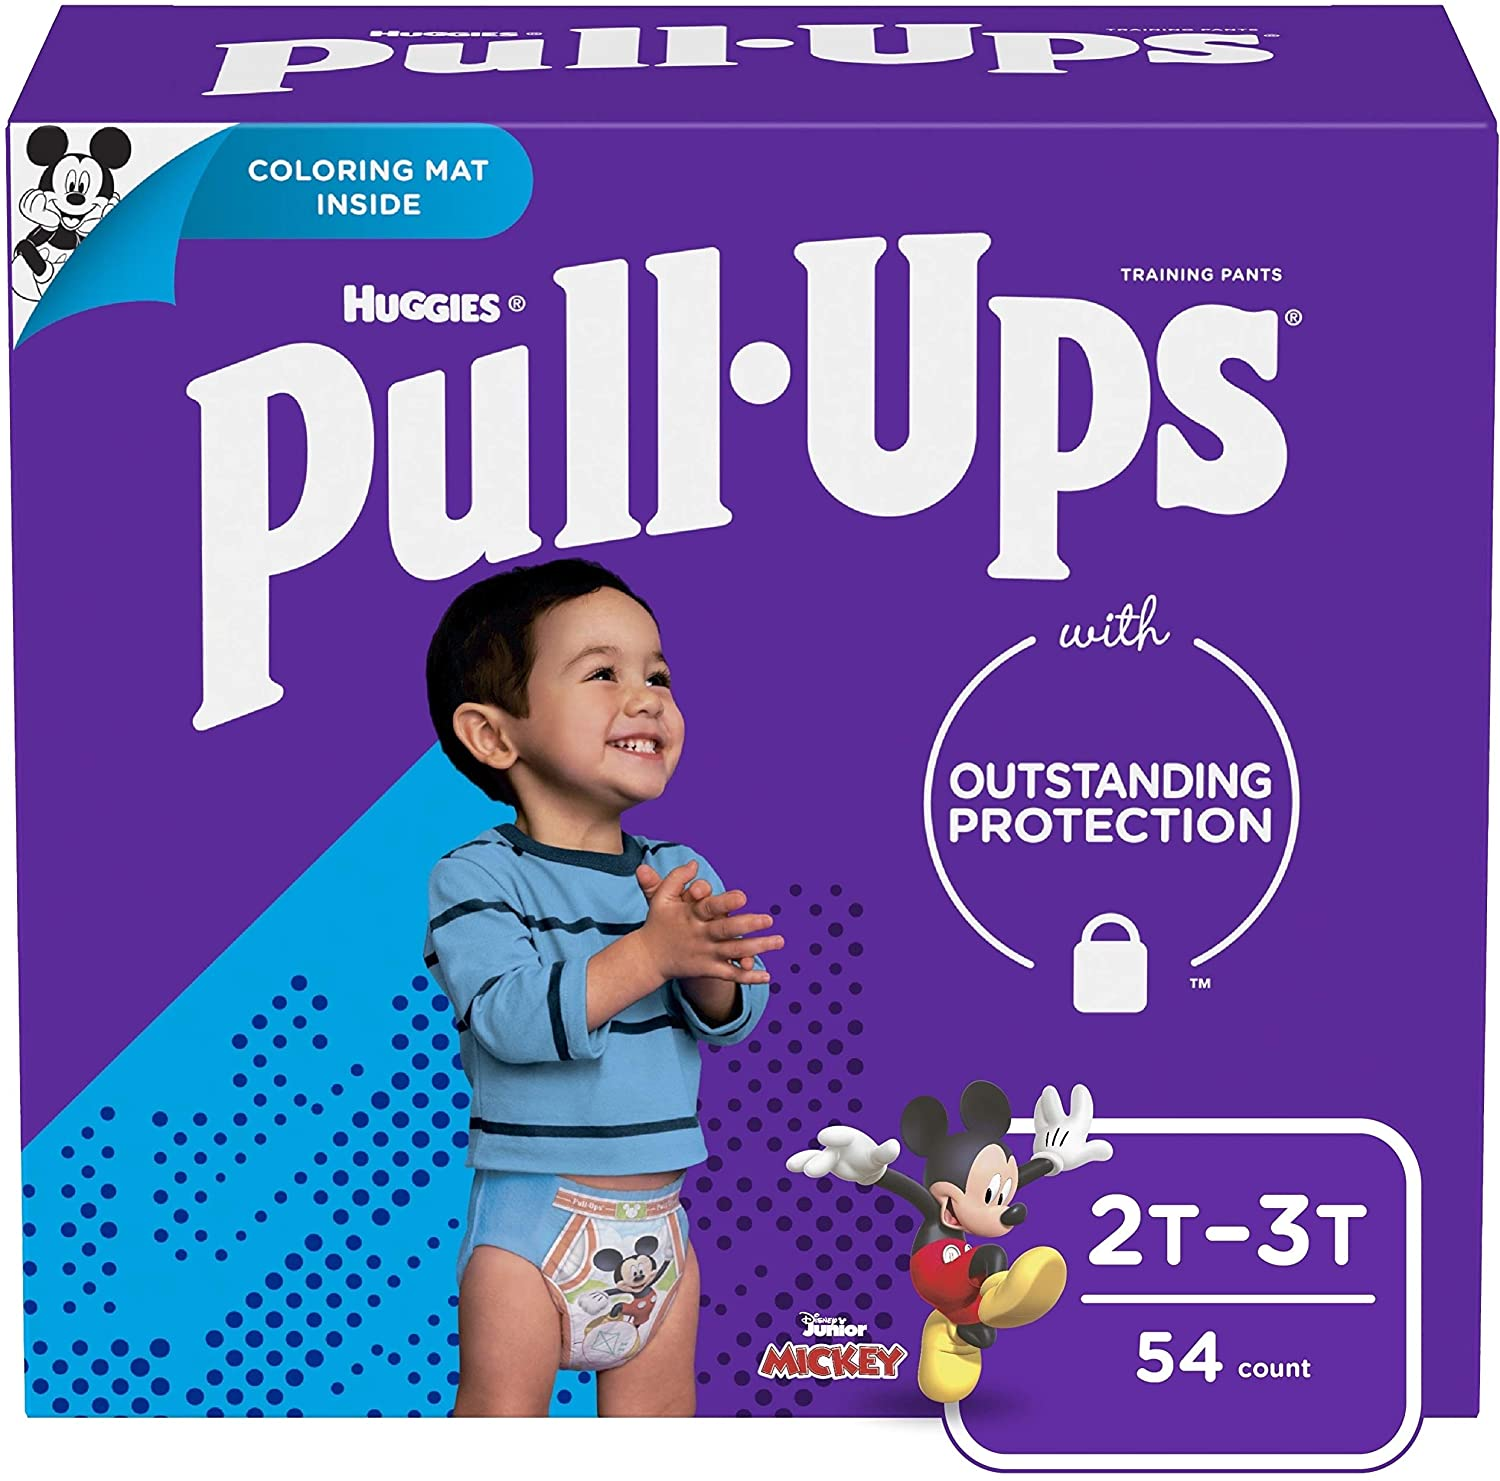 Pull-Ups Learning Designs Potty Training Pants for Boys, 2T-3T (18-34 lb.), 54 Ct. (Packaging May Vary)